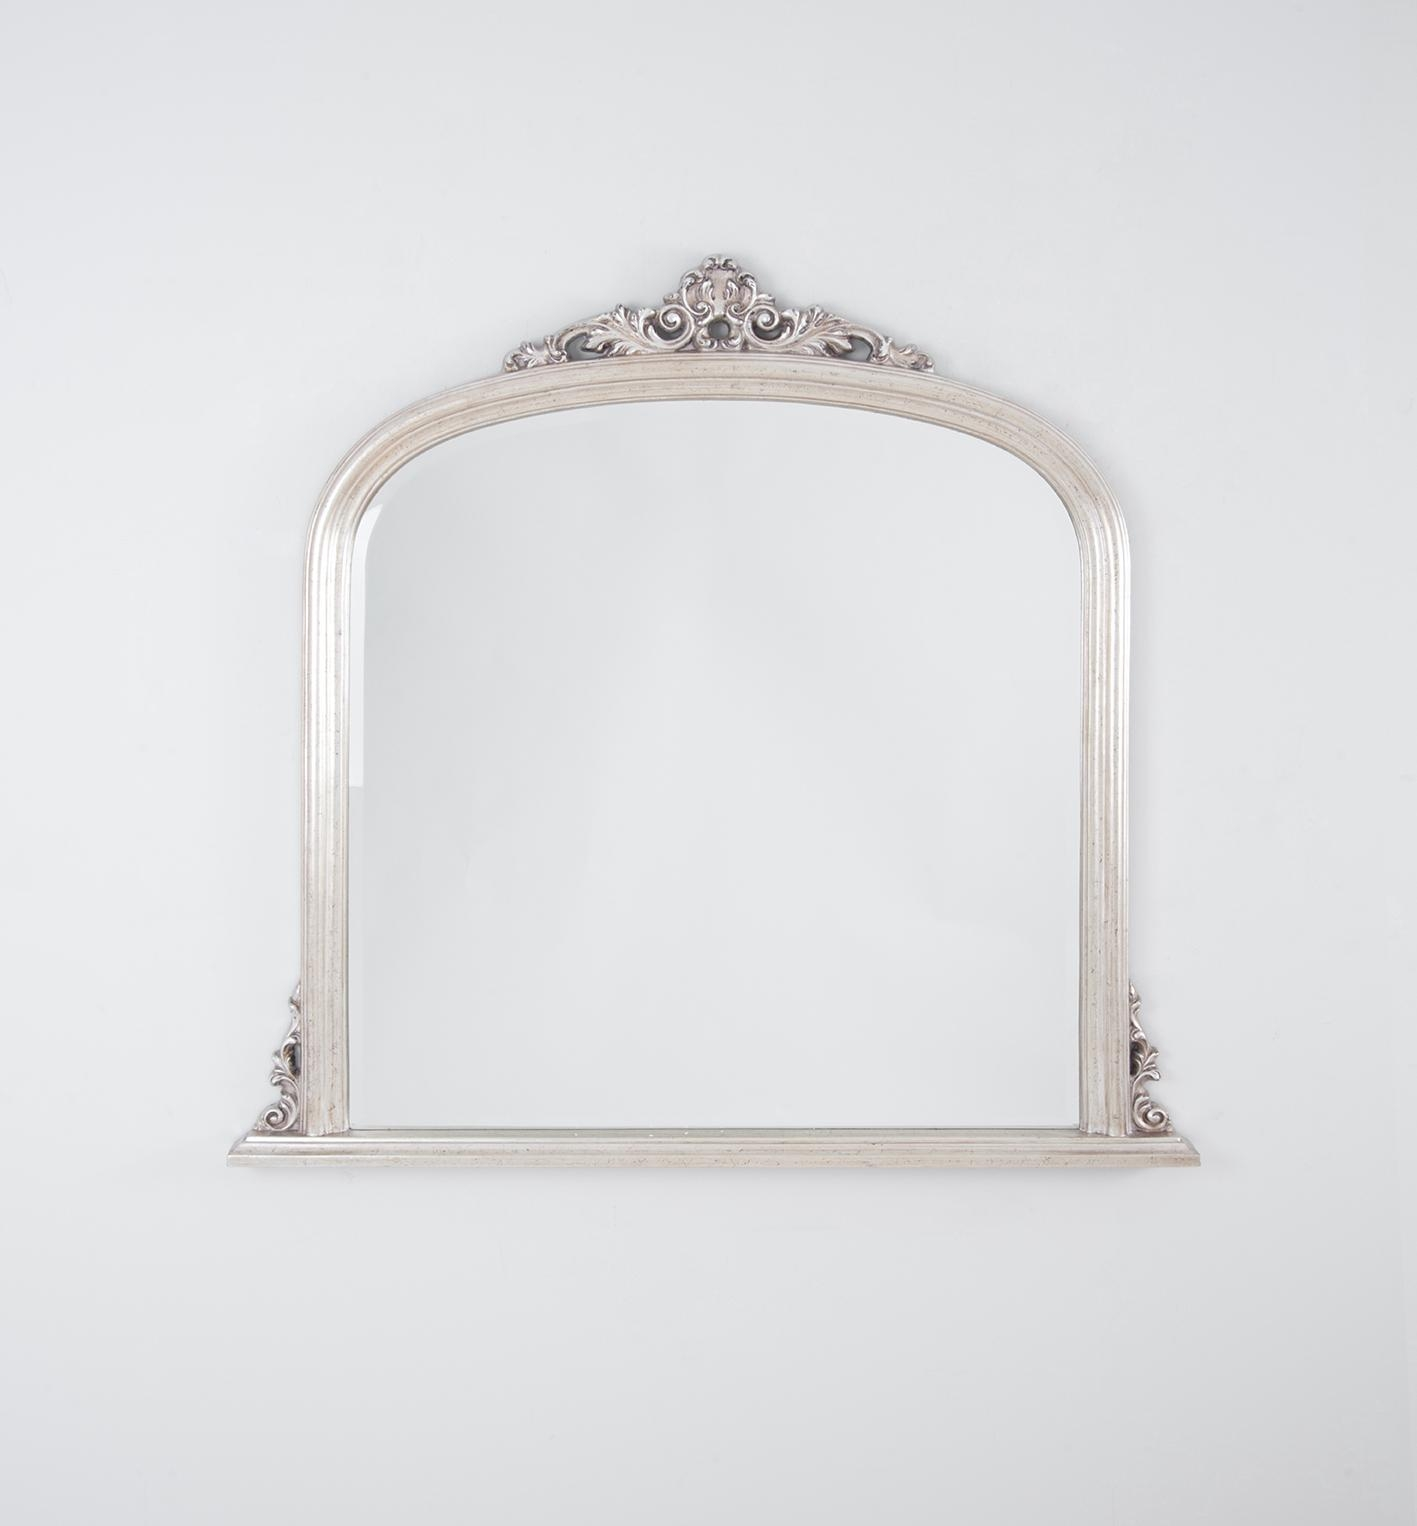 Domed Over Mantle Mirror | Warm Silver | The Block Shop Inside Mantle Mirror (View 6 of 20)